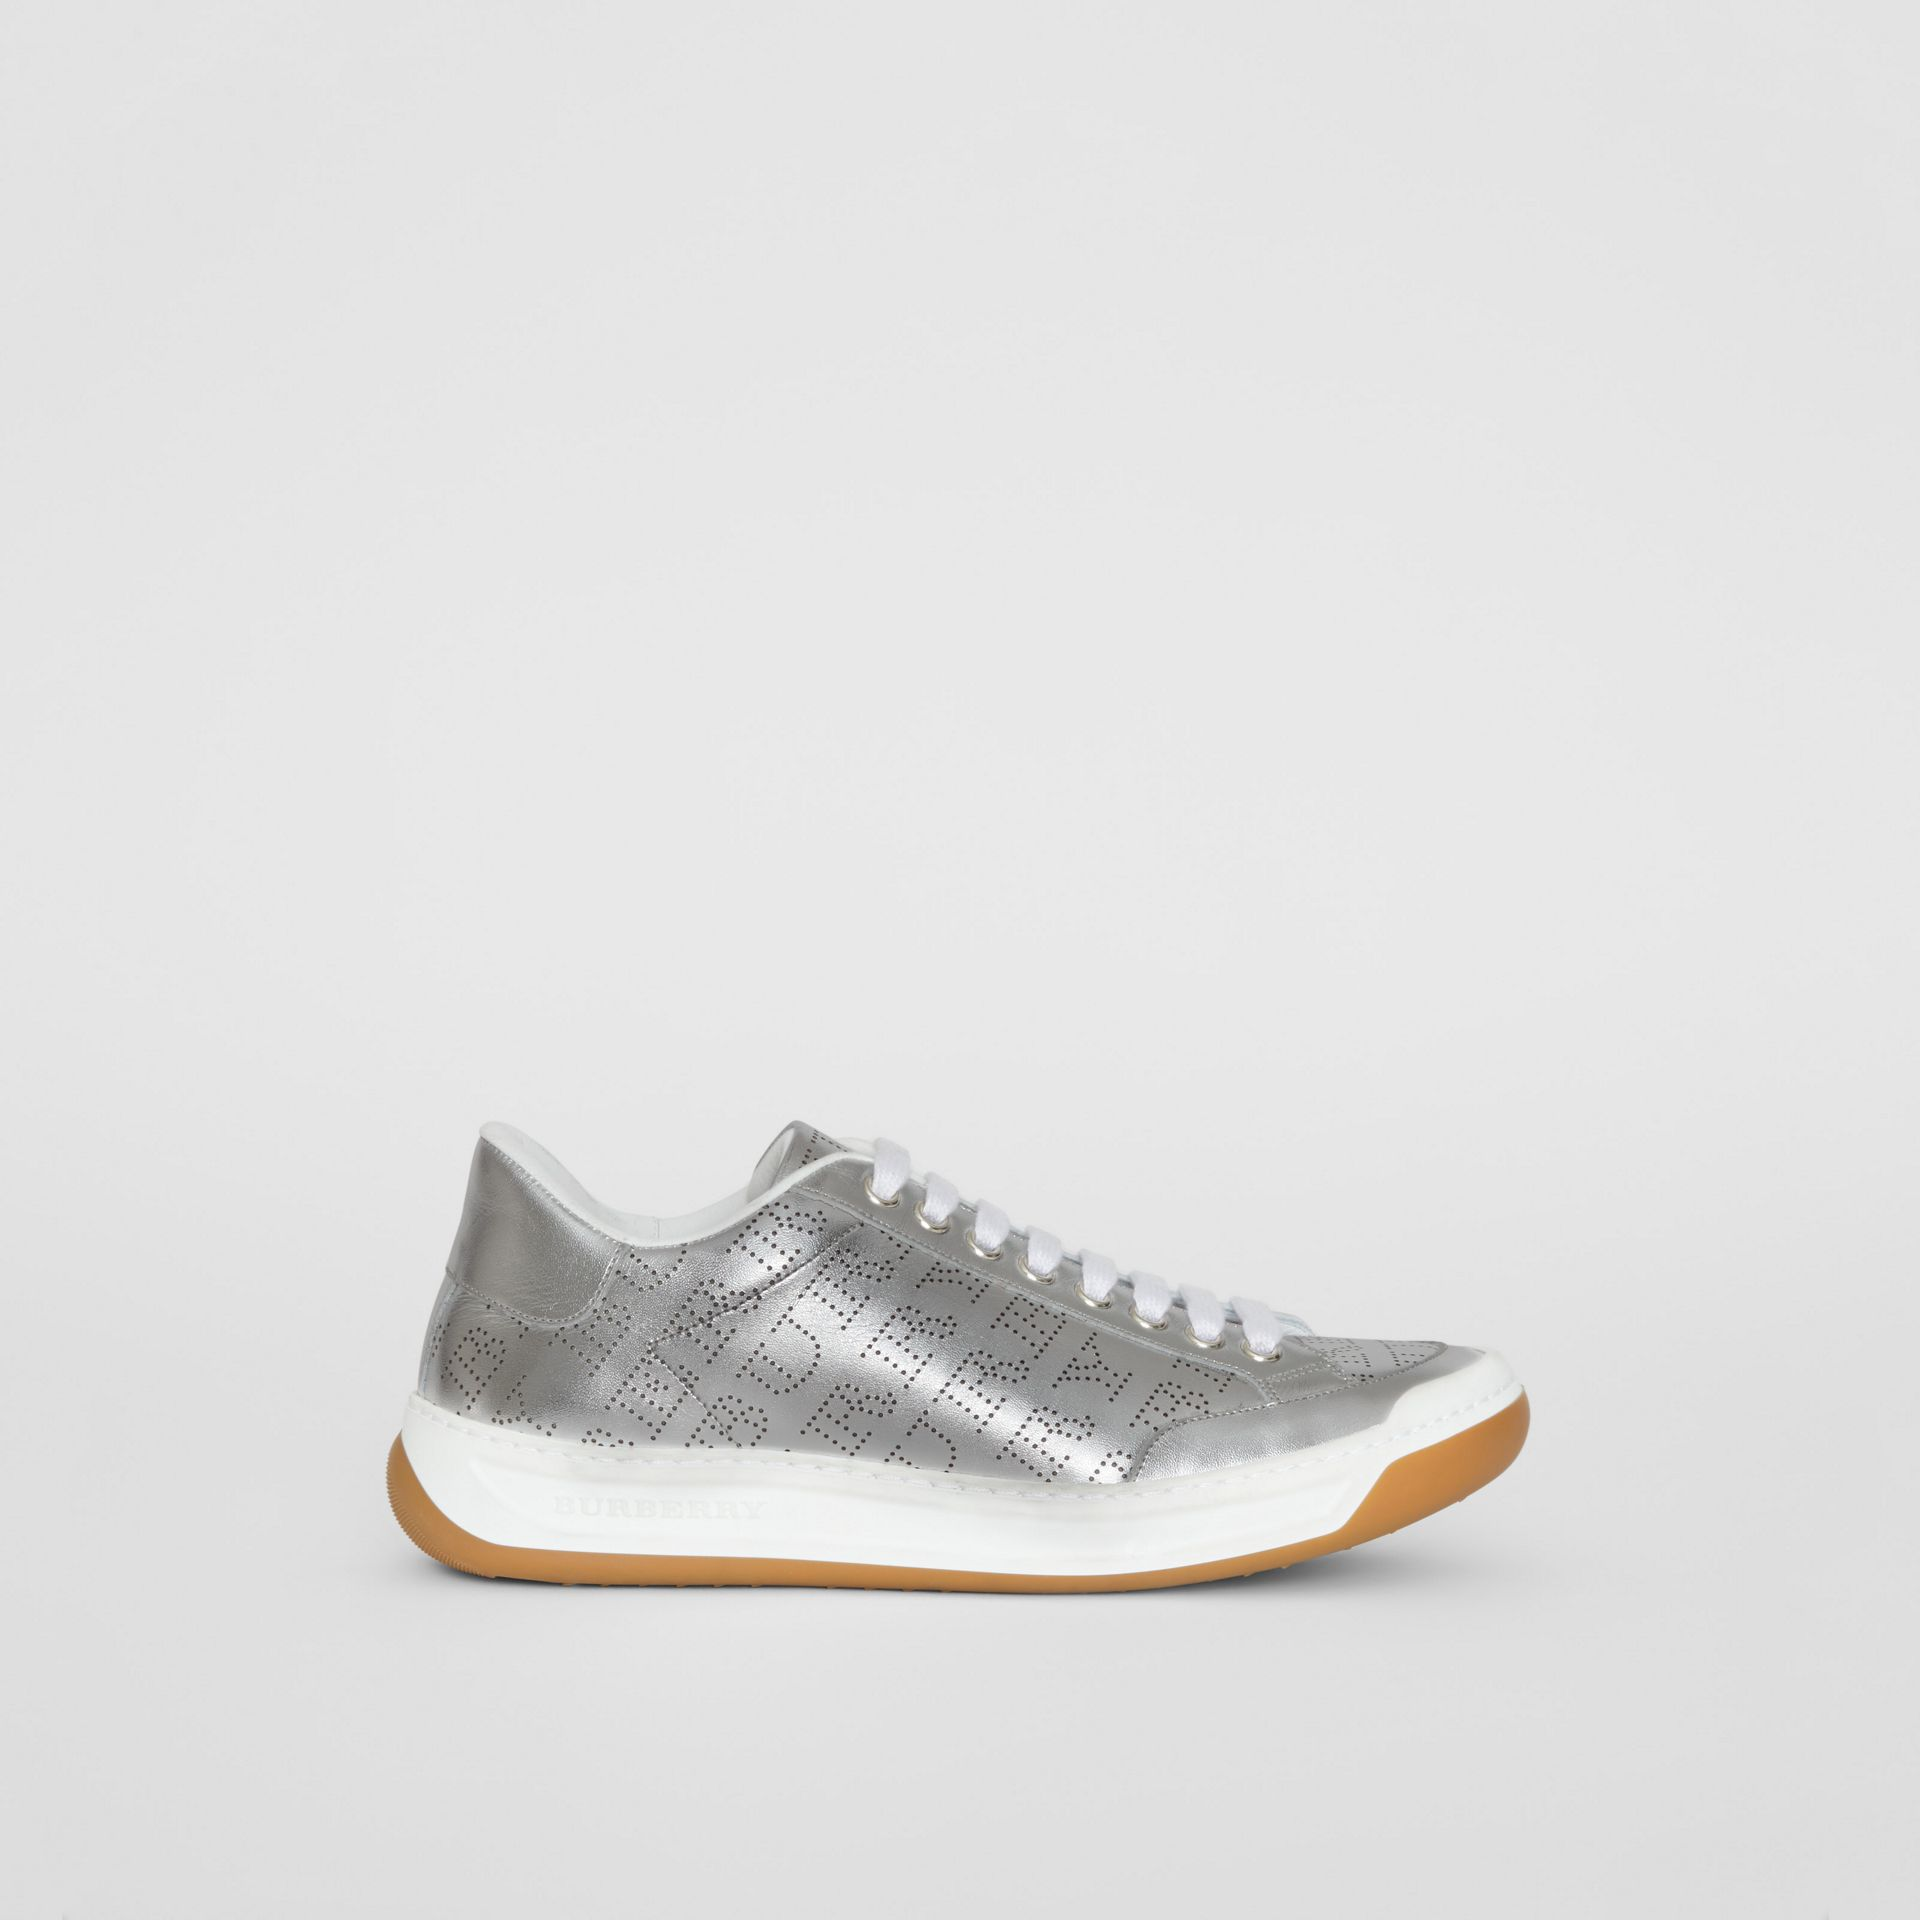 Perforated Logo Metallic Leather Sneakers in Silver Grey - Women | Burberry Australia - gallery image 5